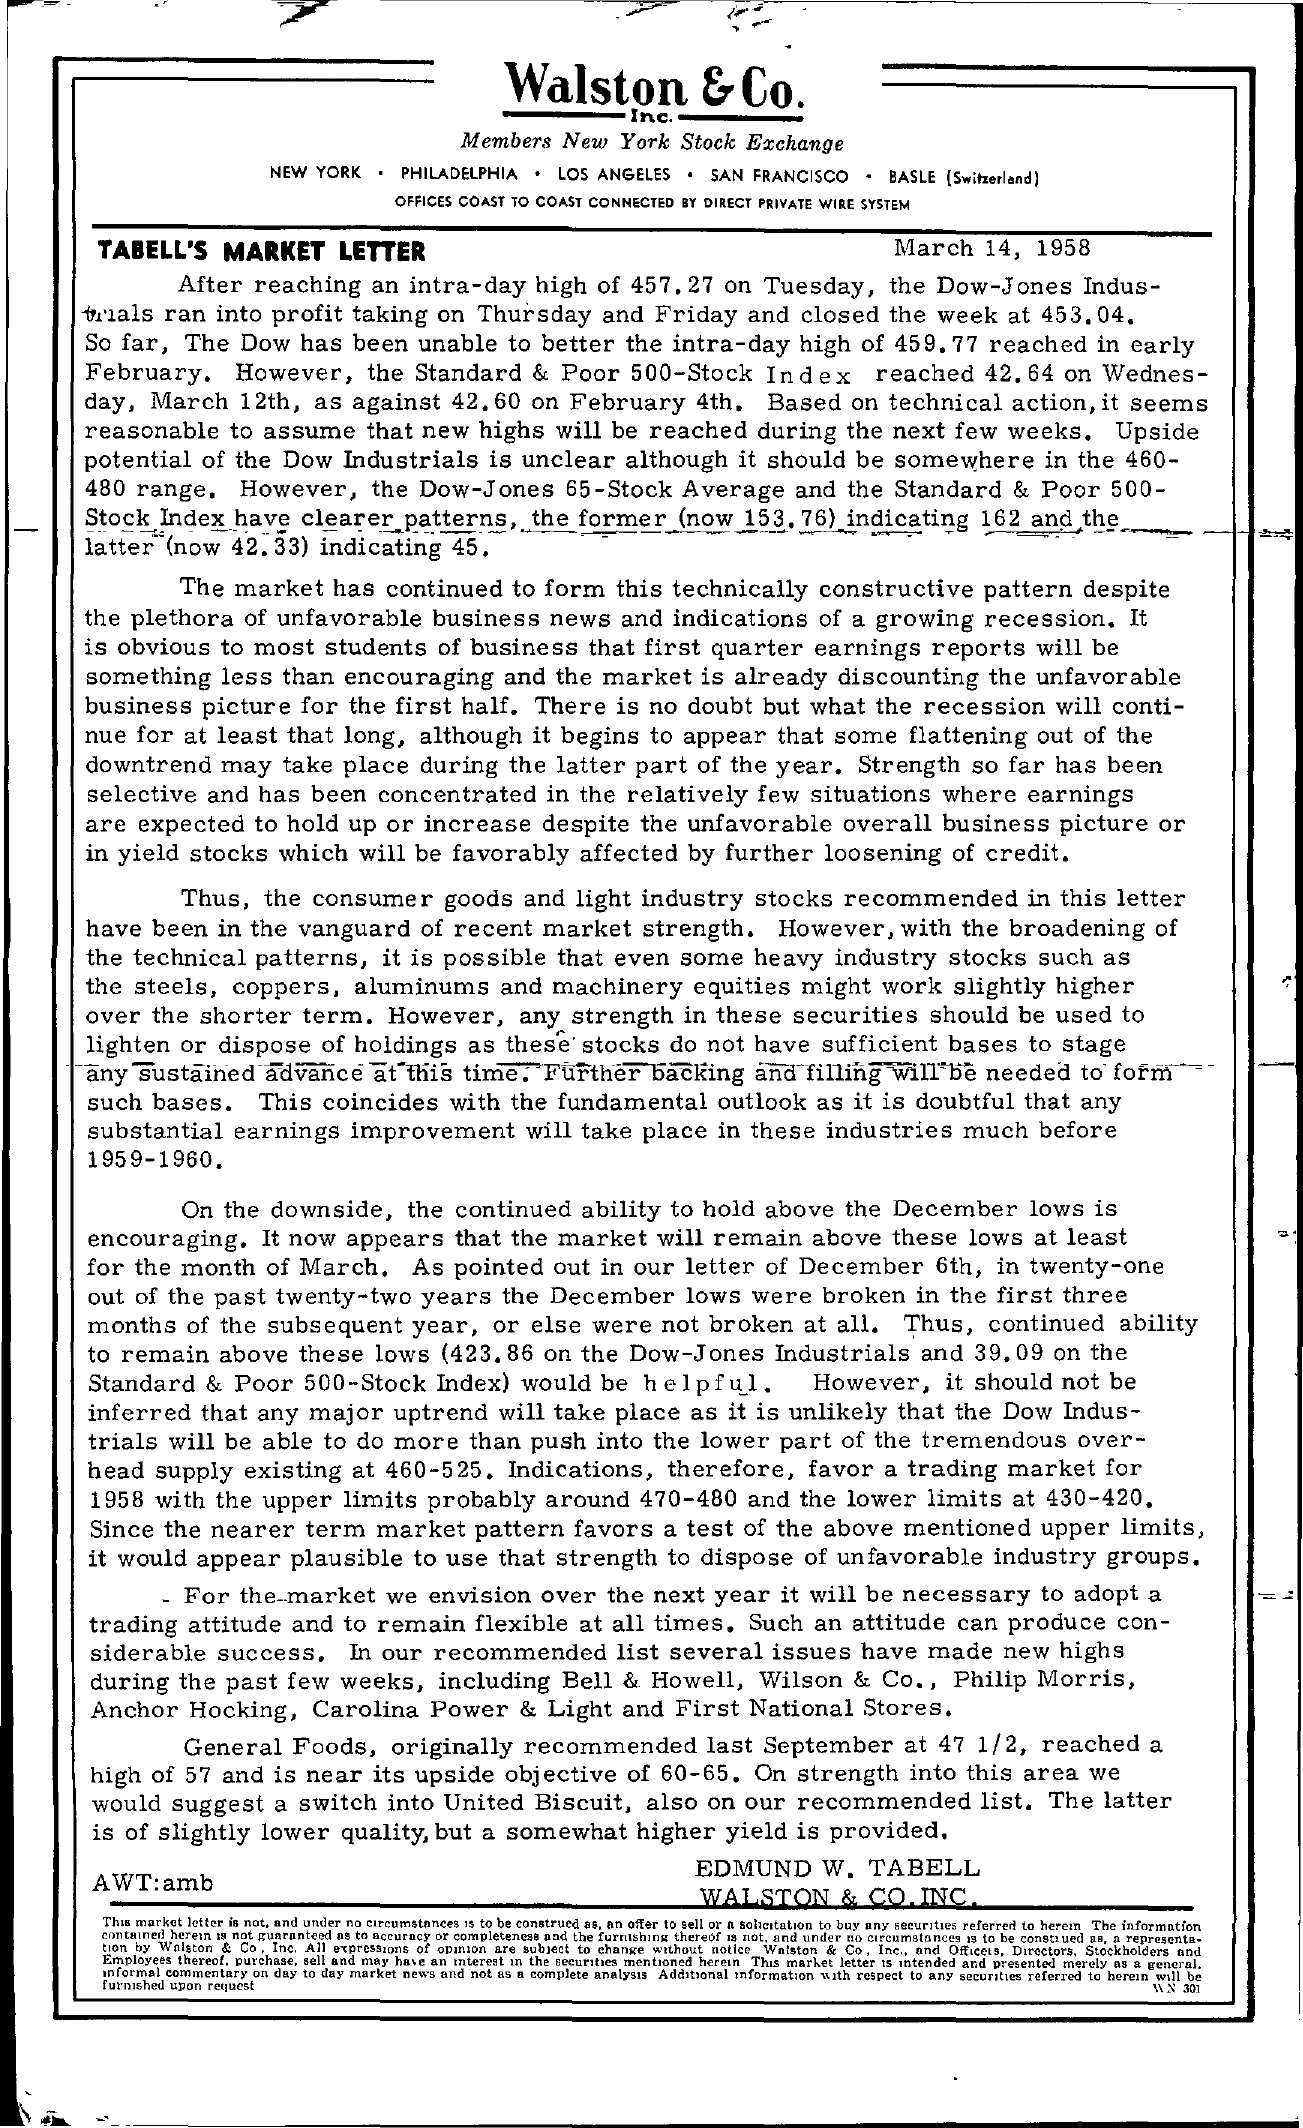 Tabell's Market Letter - March 14, 1958